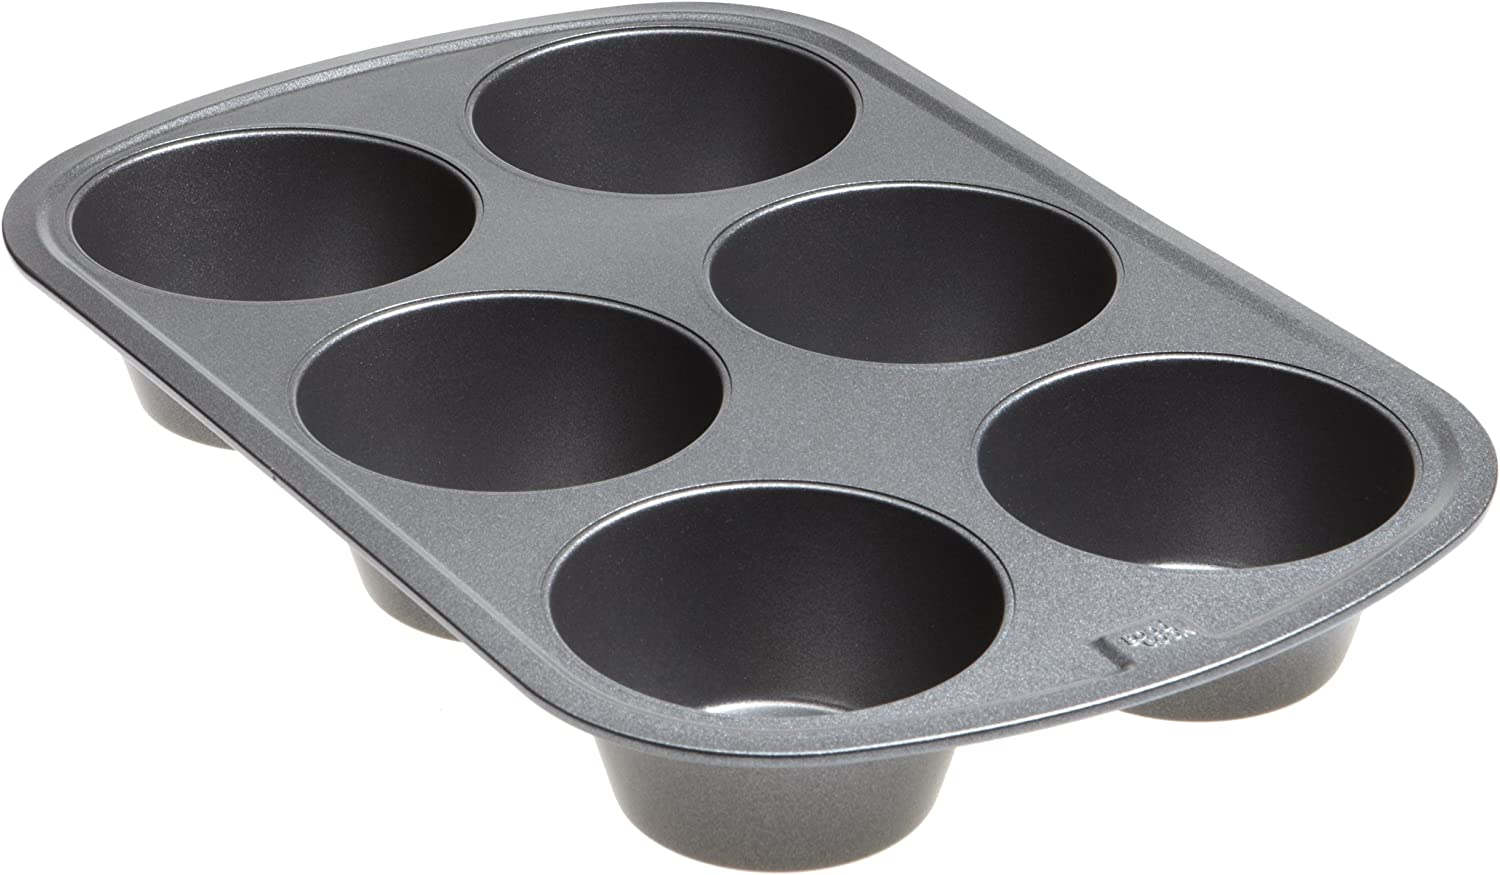 Good Cook New products world's highest Price reduction quality popular 04033 Non-Stick Texas Muffin Steel in Pan 3-1 Dia 2